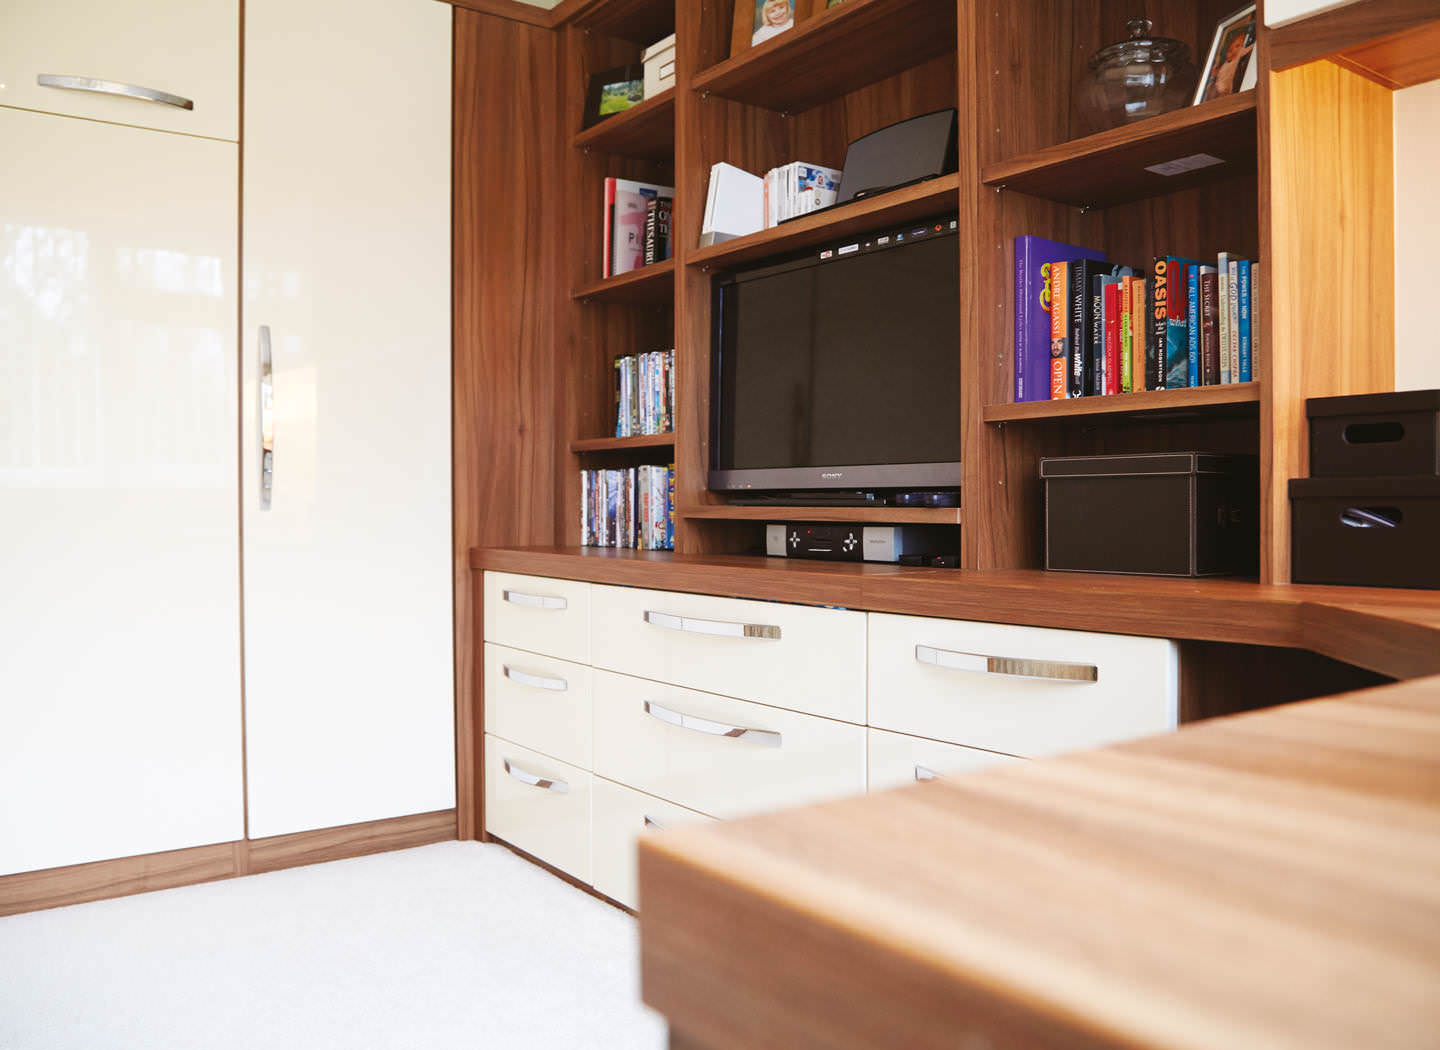 Case study showing fitted drawers and shelves in study bedroom